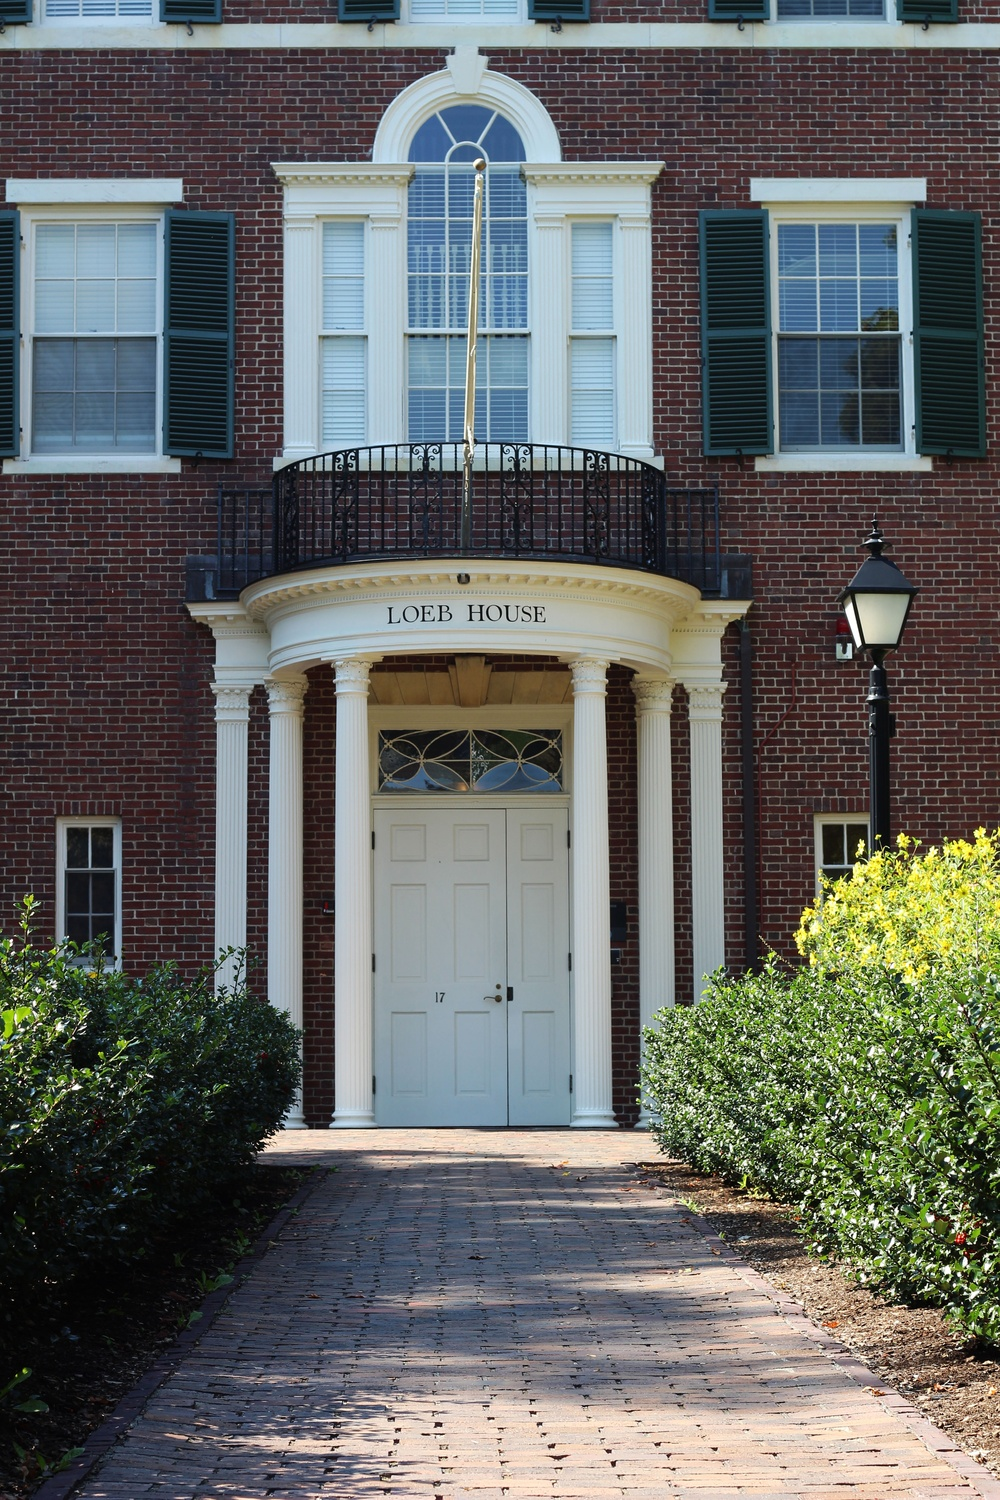 The Harvard Corporation typically meets at Loeb House seven or eight times each academic year.